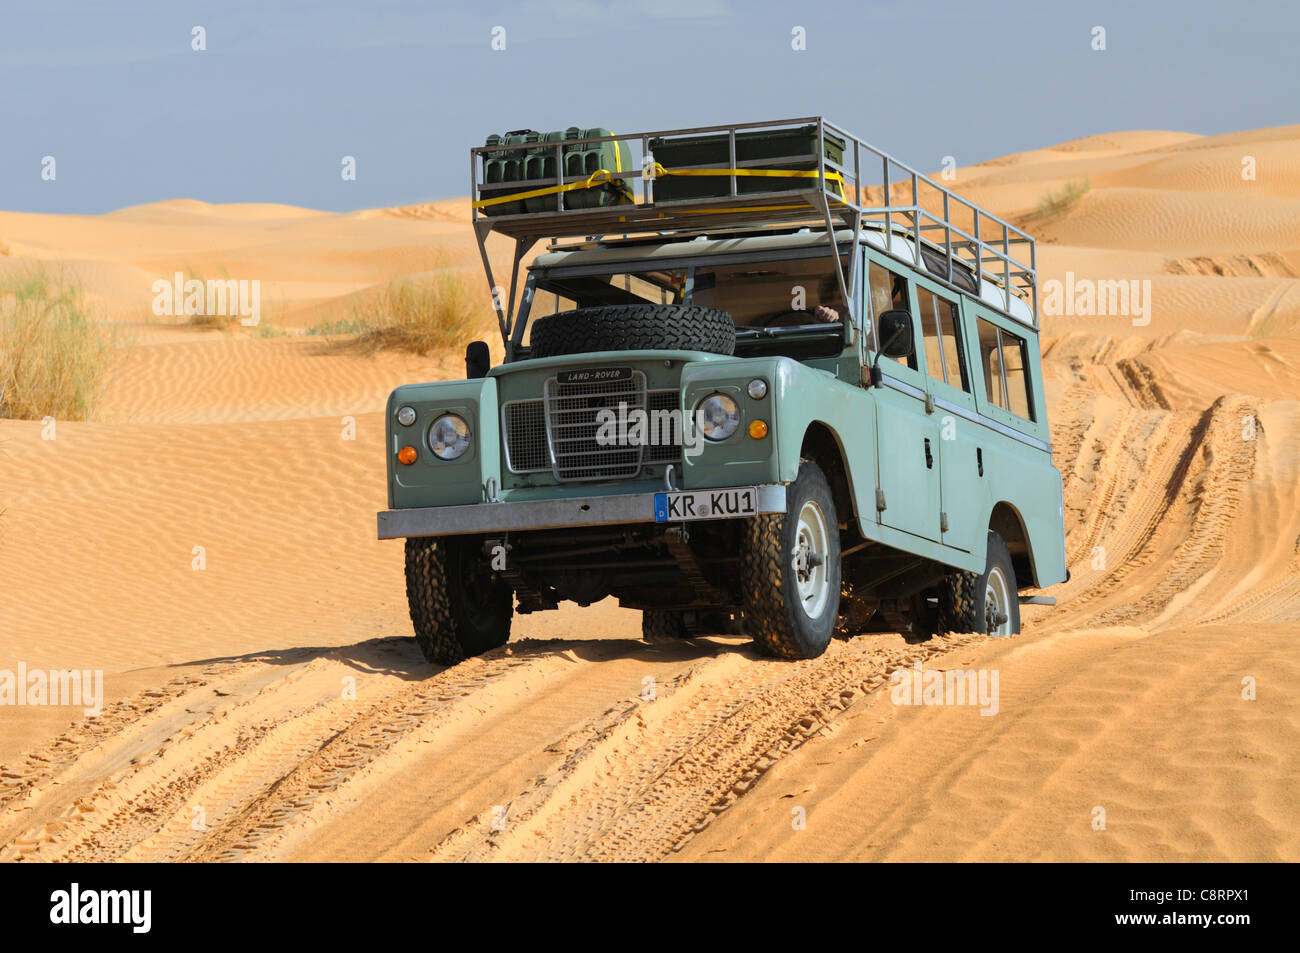 Africa, Tunisia, nr. Tembaine. Desert tourists driving their Land Rover Series 3 Station Wagon through a sandfield - Stock Image